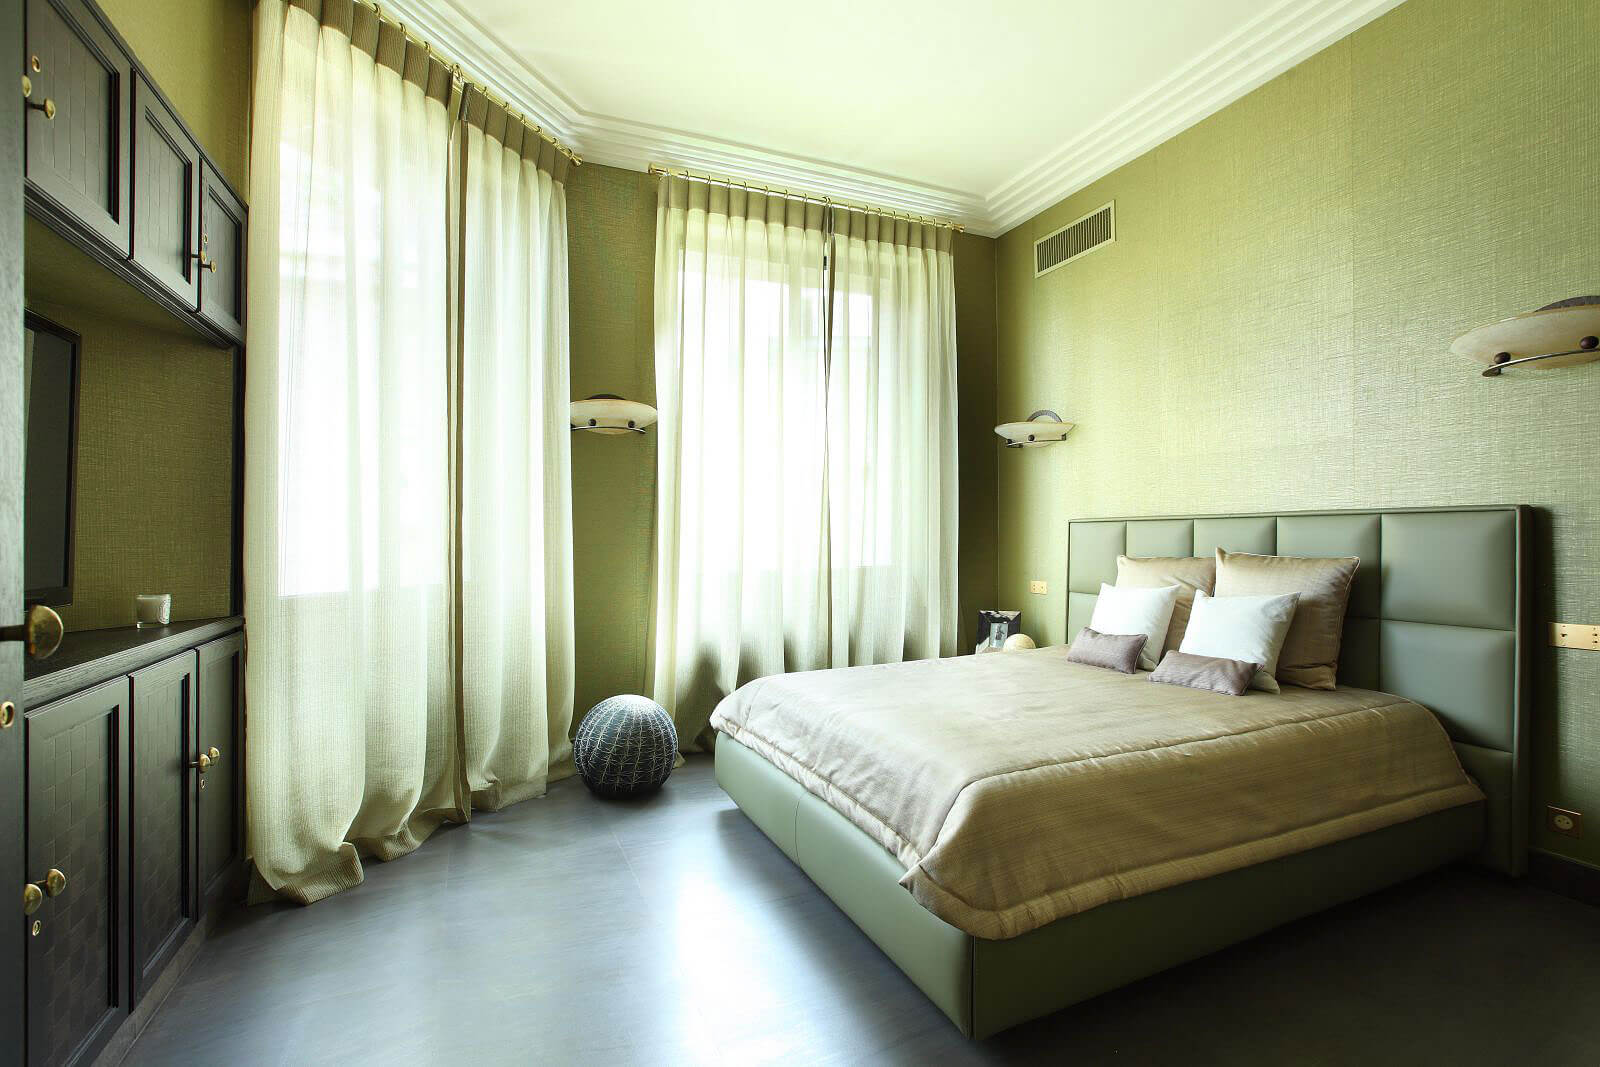 Diamant sur le Parc, a bedoom | Luxury Real Estate, Paris 16, France | COGEMAD • Finest Residences